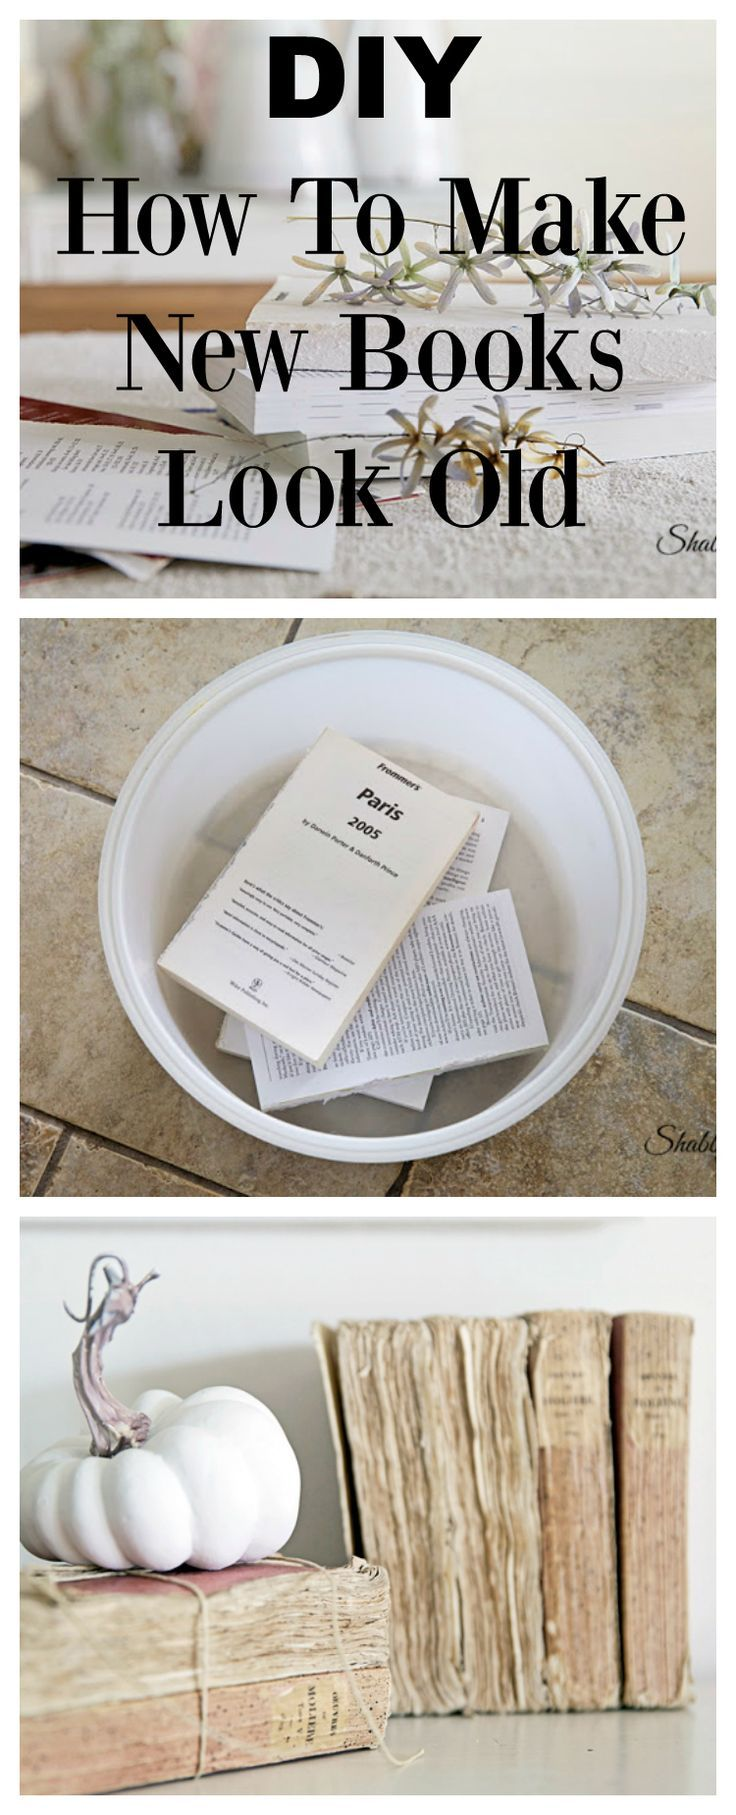 how to make new books look old #books #diy #bookproject #paper #frenchstyle